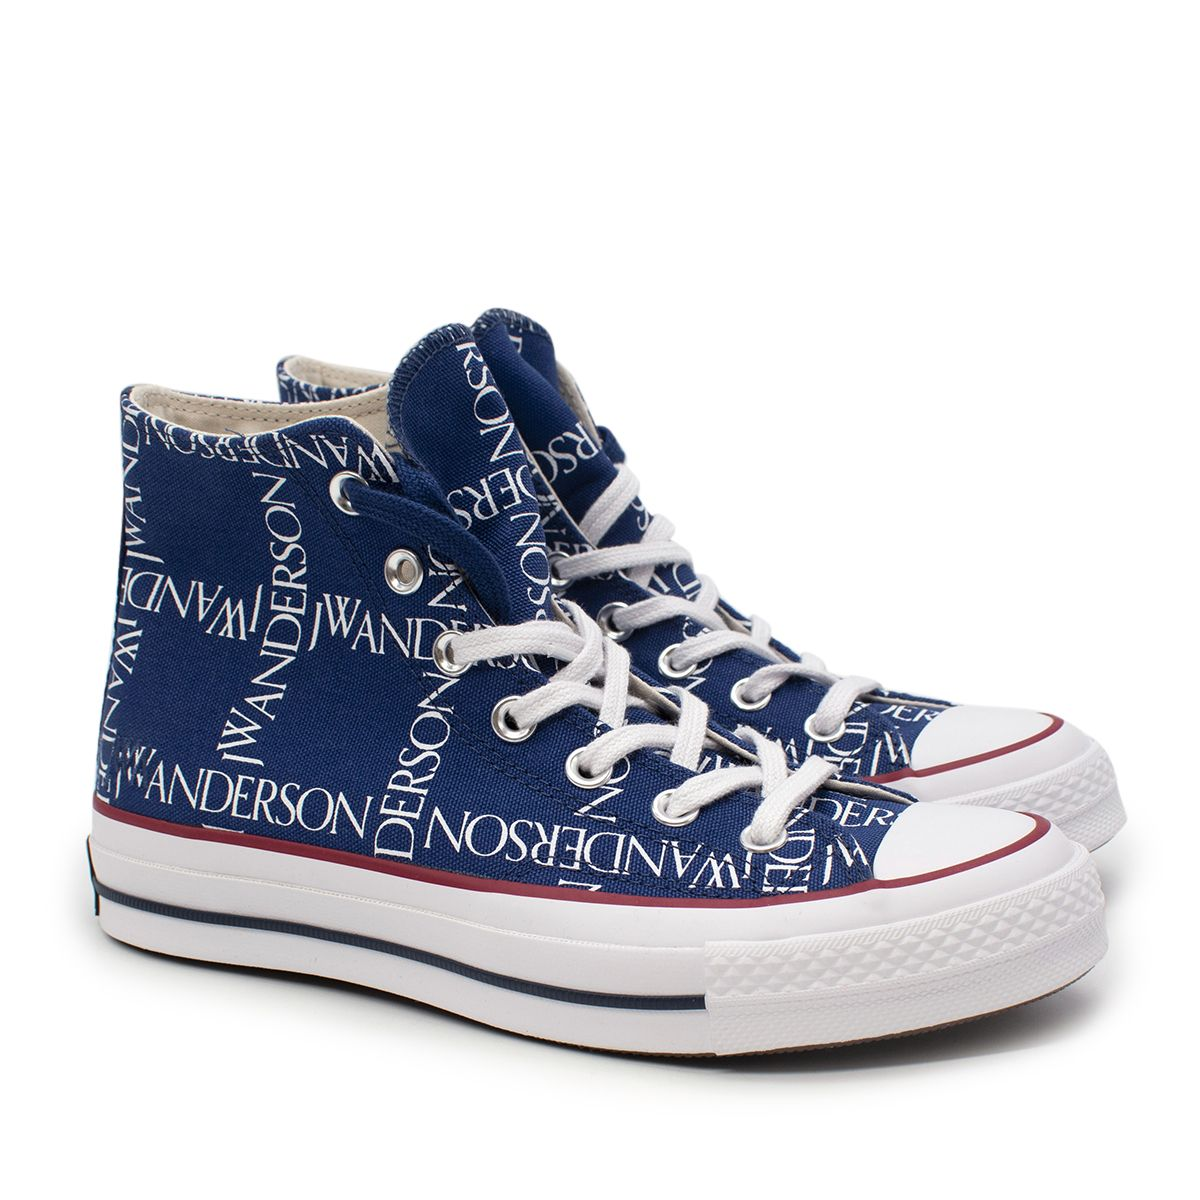 JW Anderson x Converse Chuck Taylor Royal Blue High-Top Sneakers